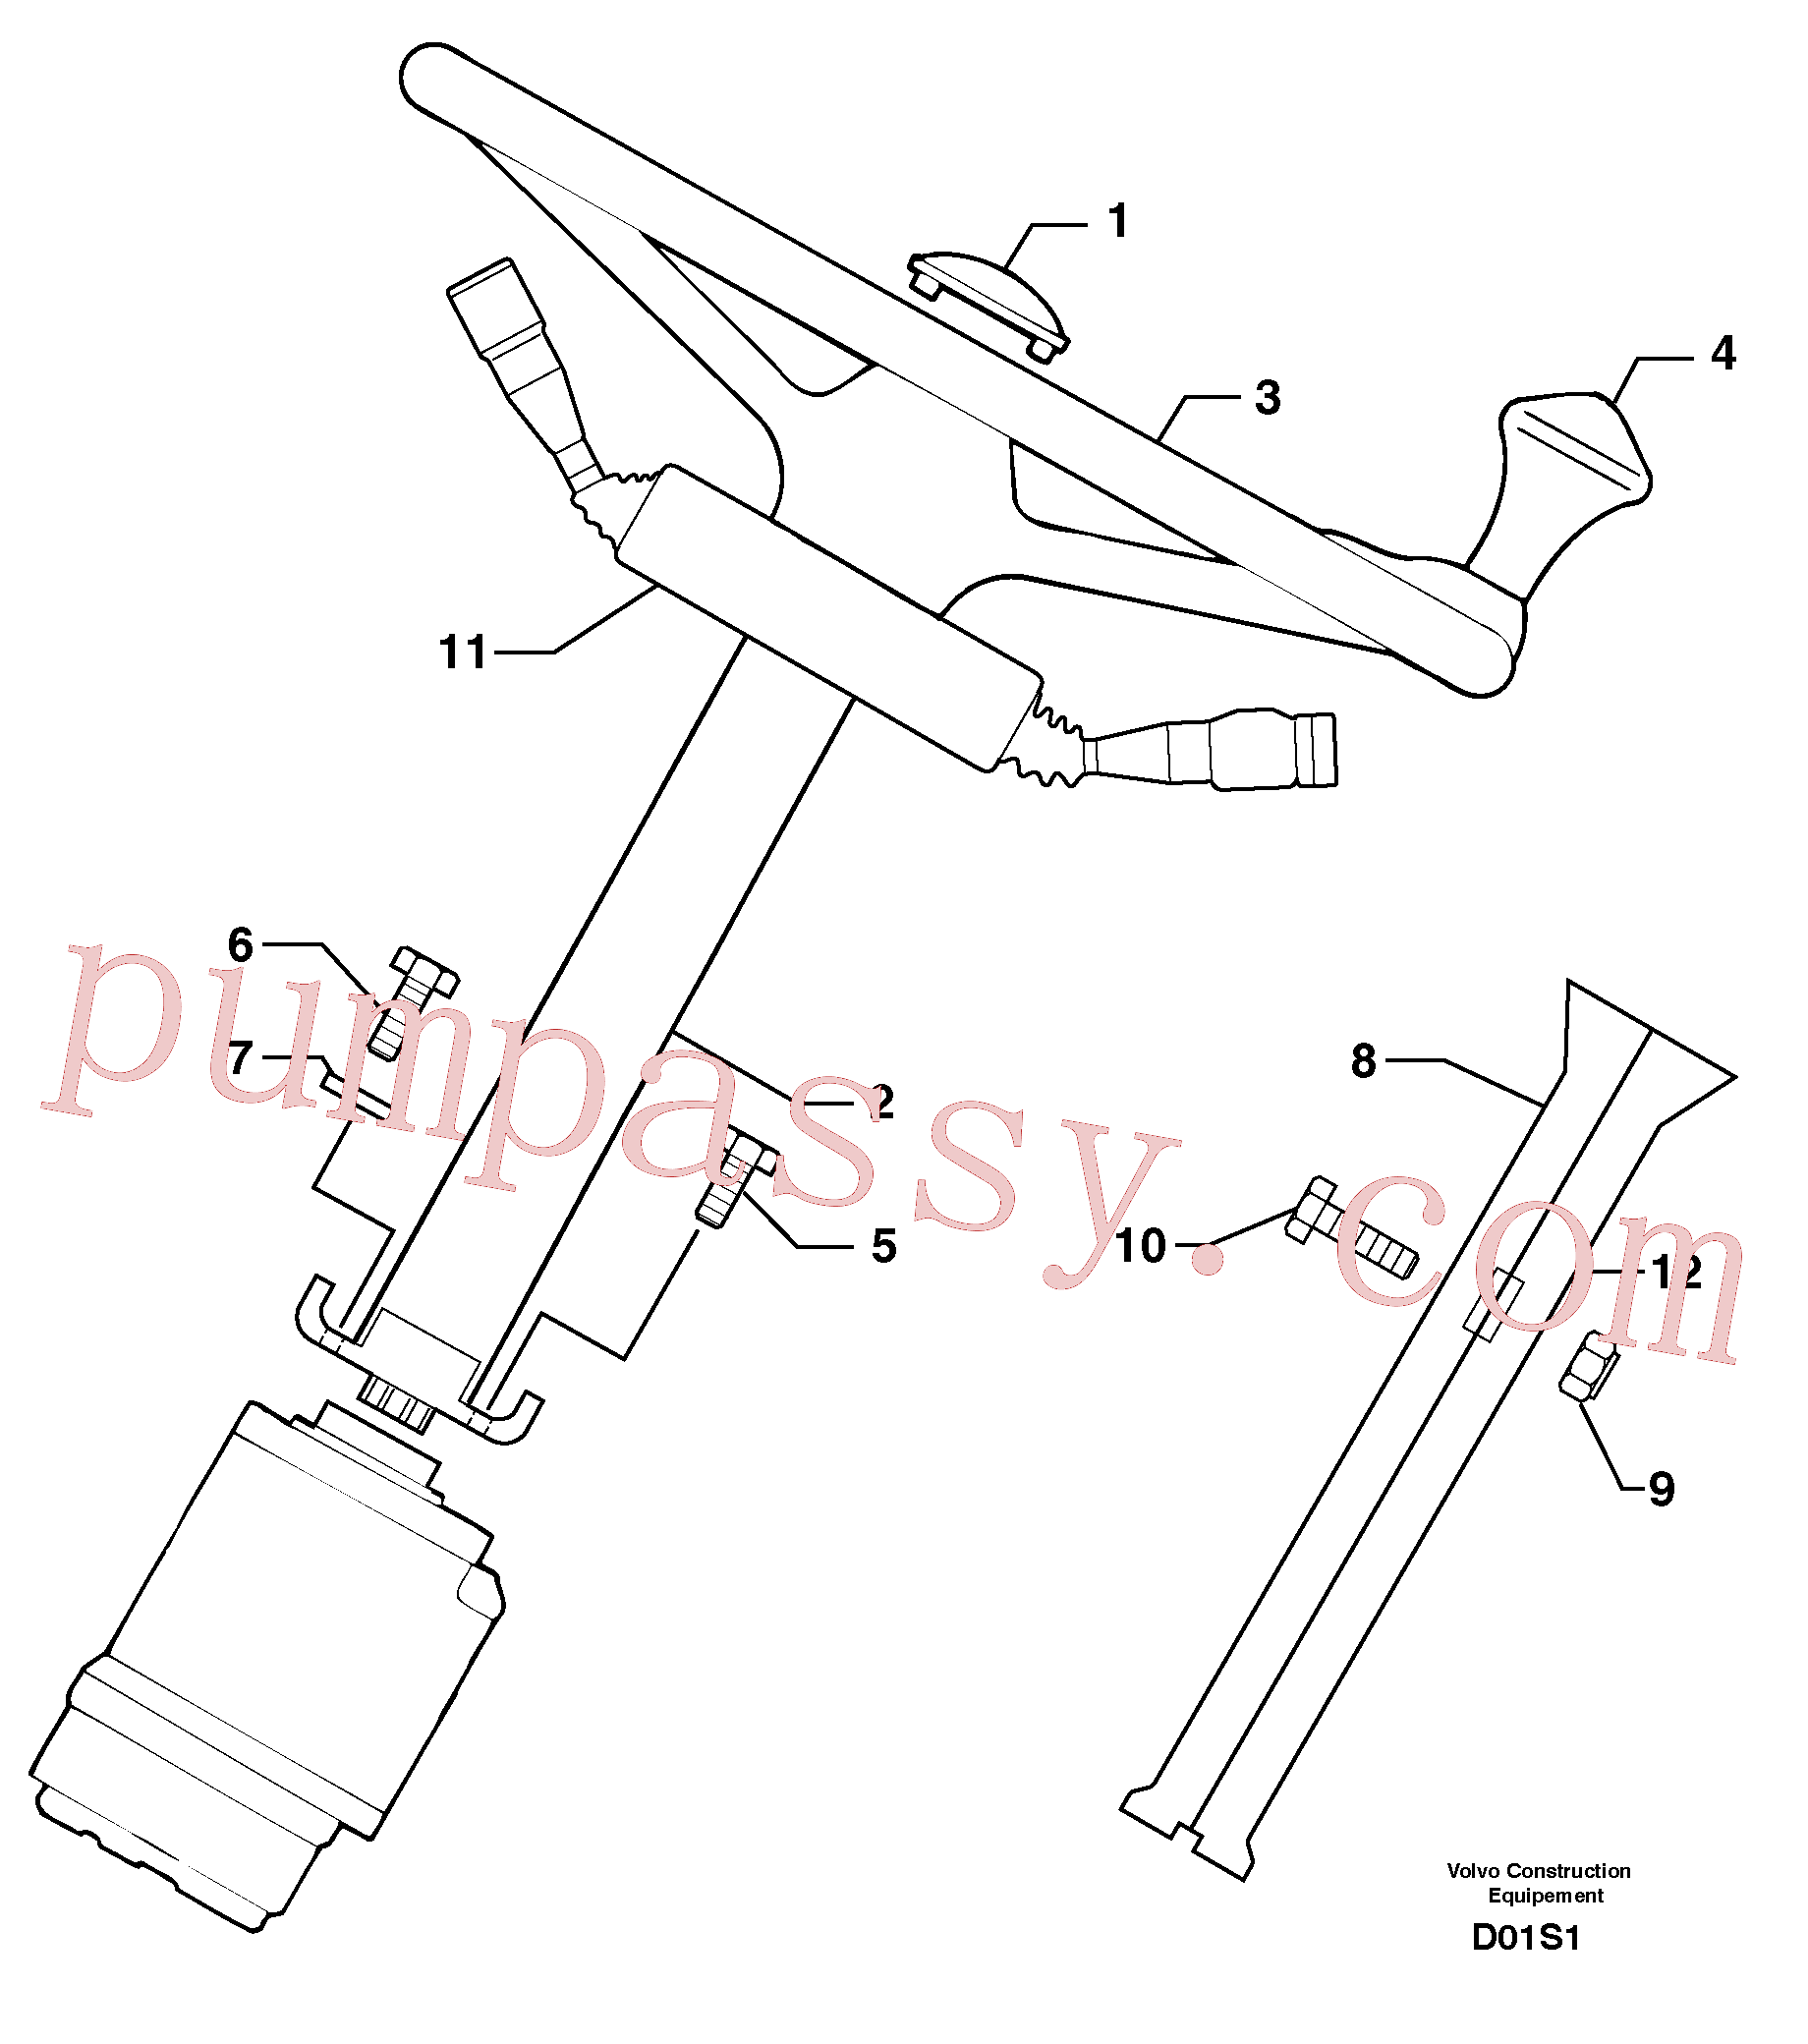 PJ4380055 for Volvo Steering(D01S1 assembly)